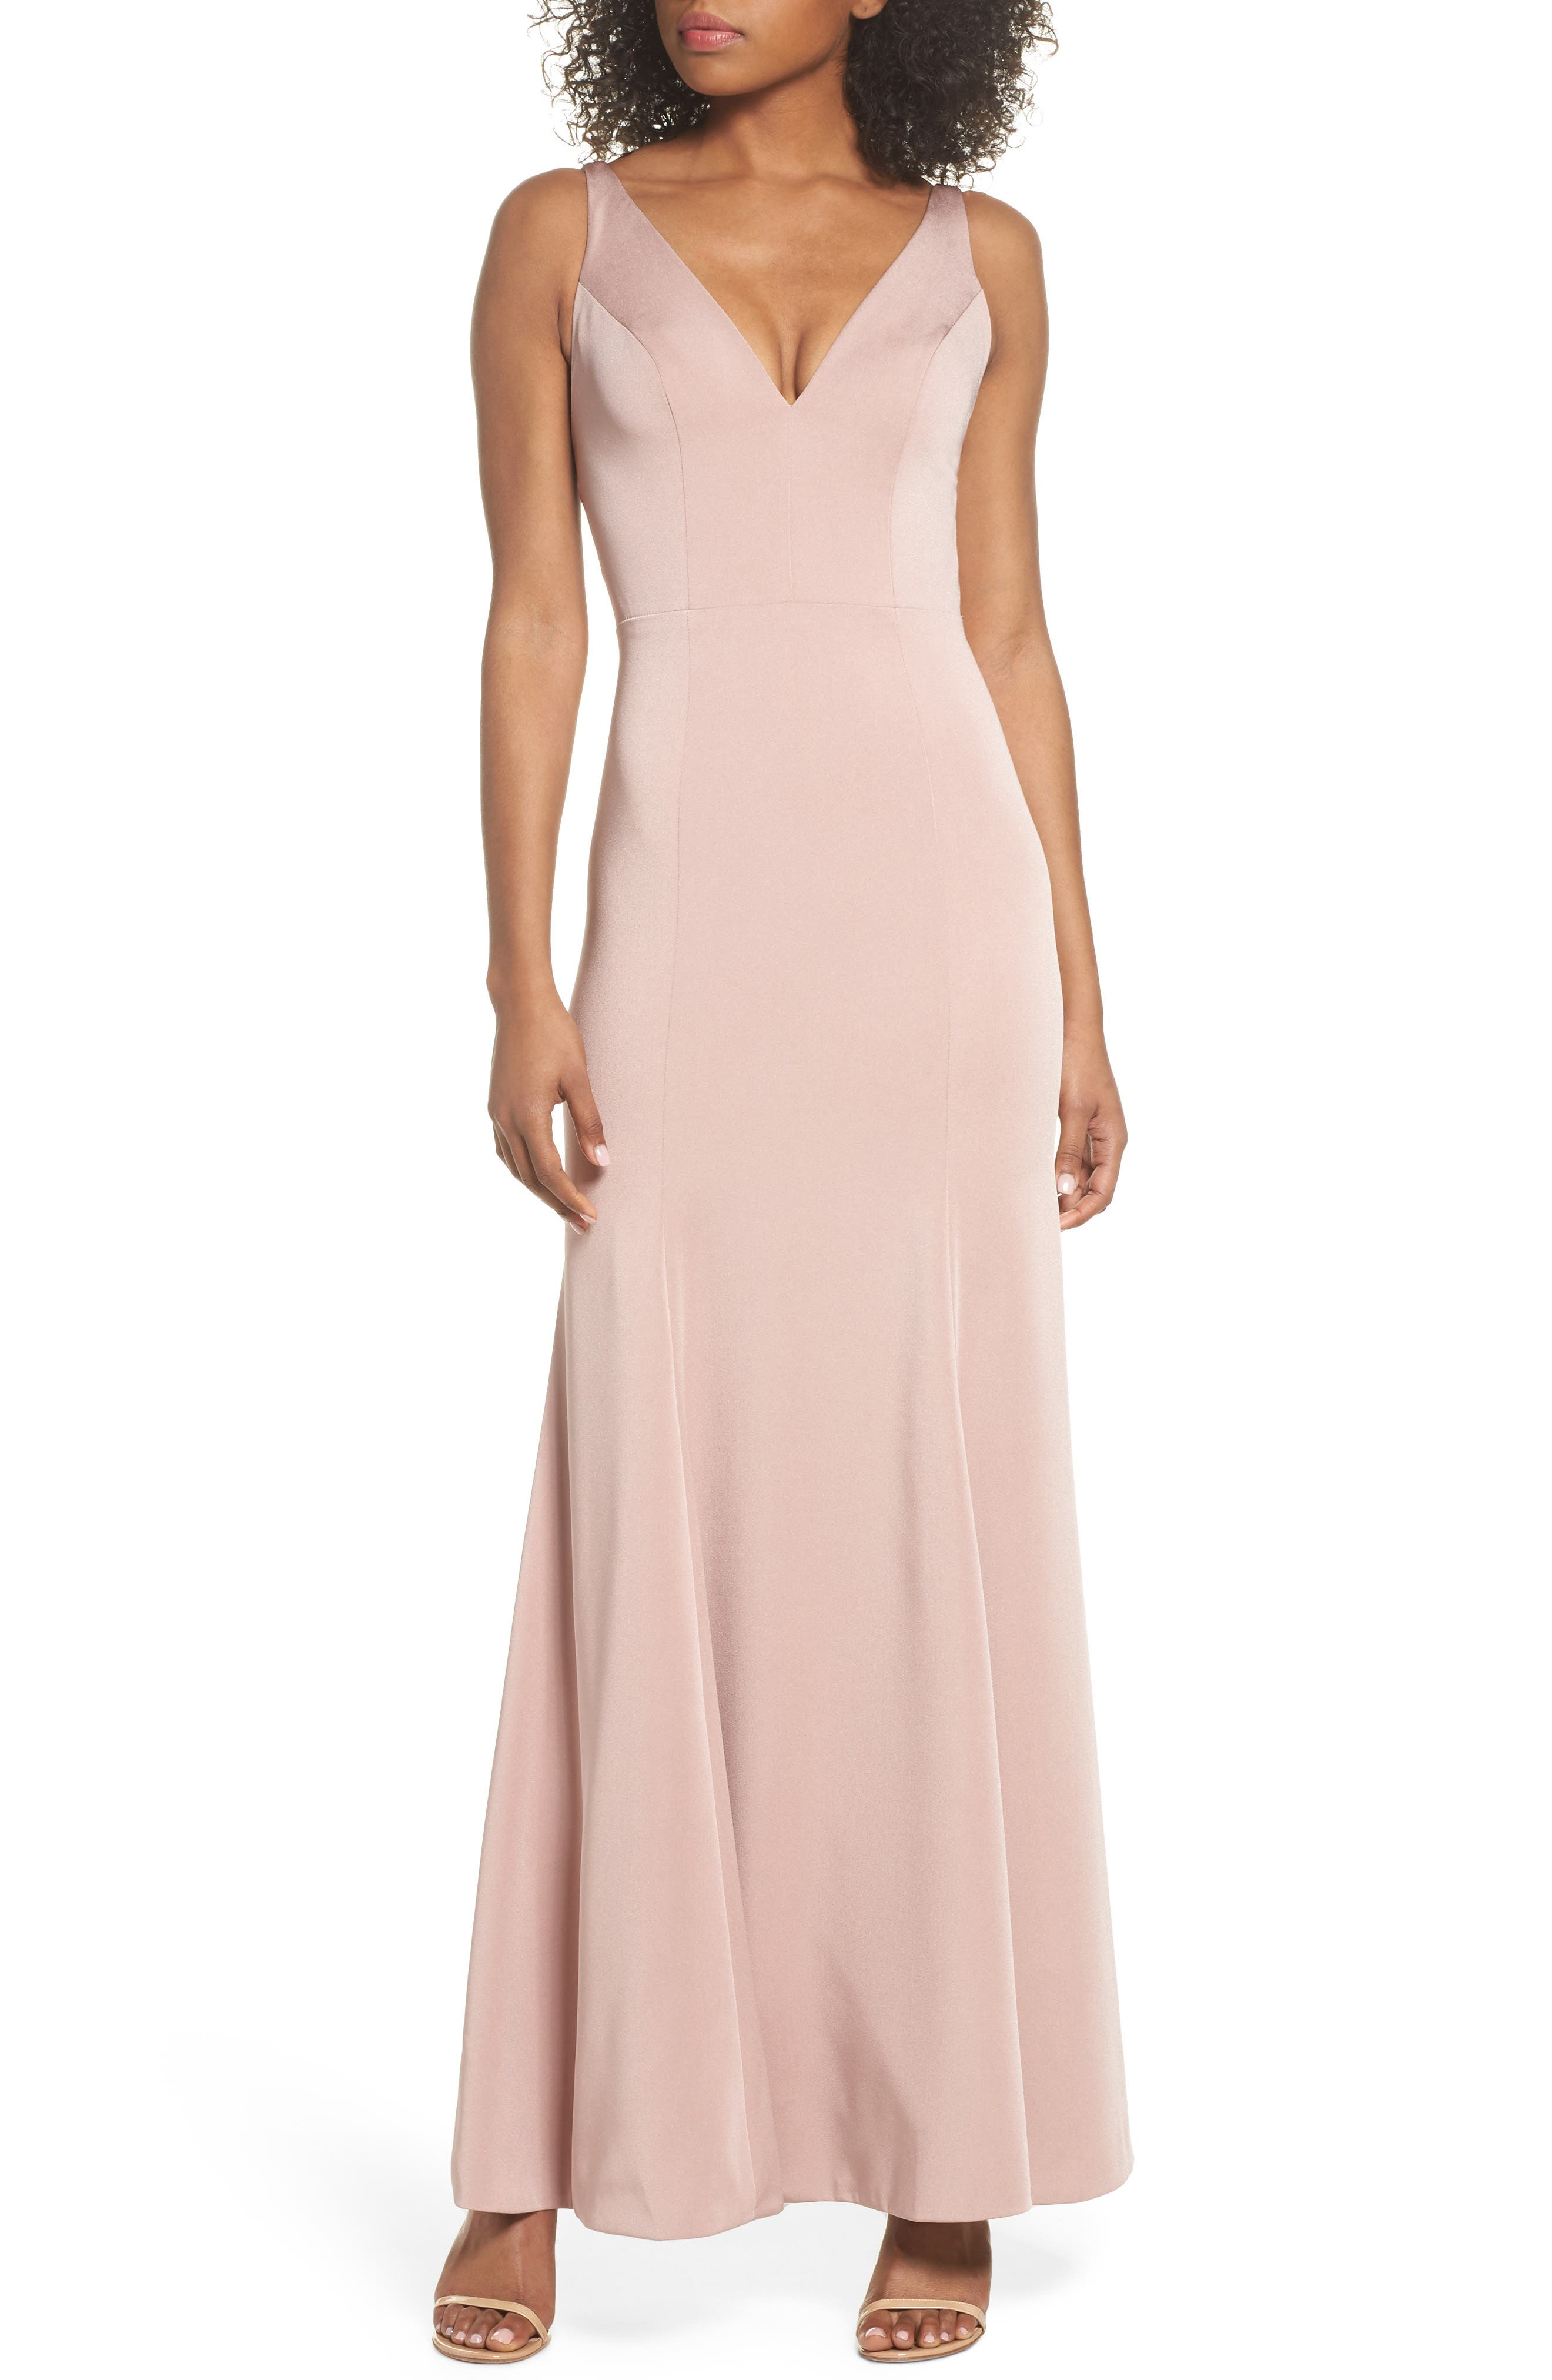 bac2a8adc717 JENNY YOO Jade Luxe Crepe V-Neck Gown, Whipped Apricot | ModeSens